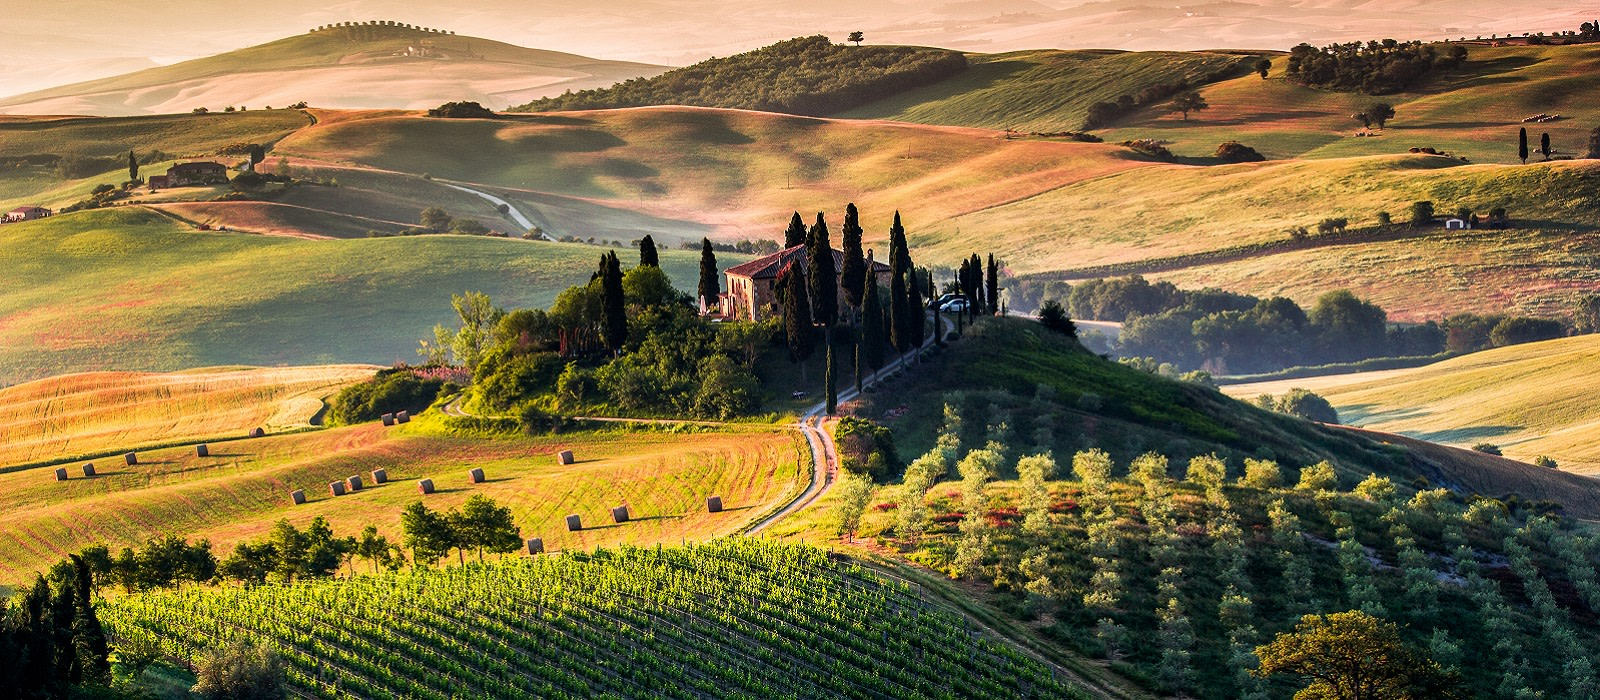 Enchanting Travels Italy Tours Tuscany, panoramic landscape - Italy